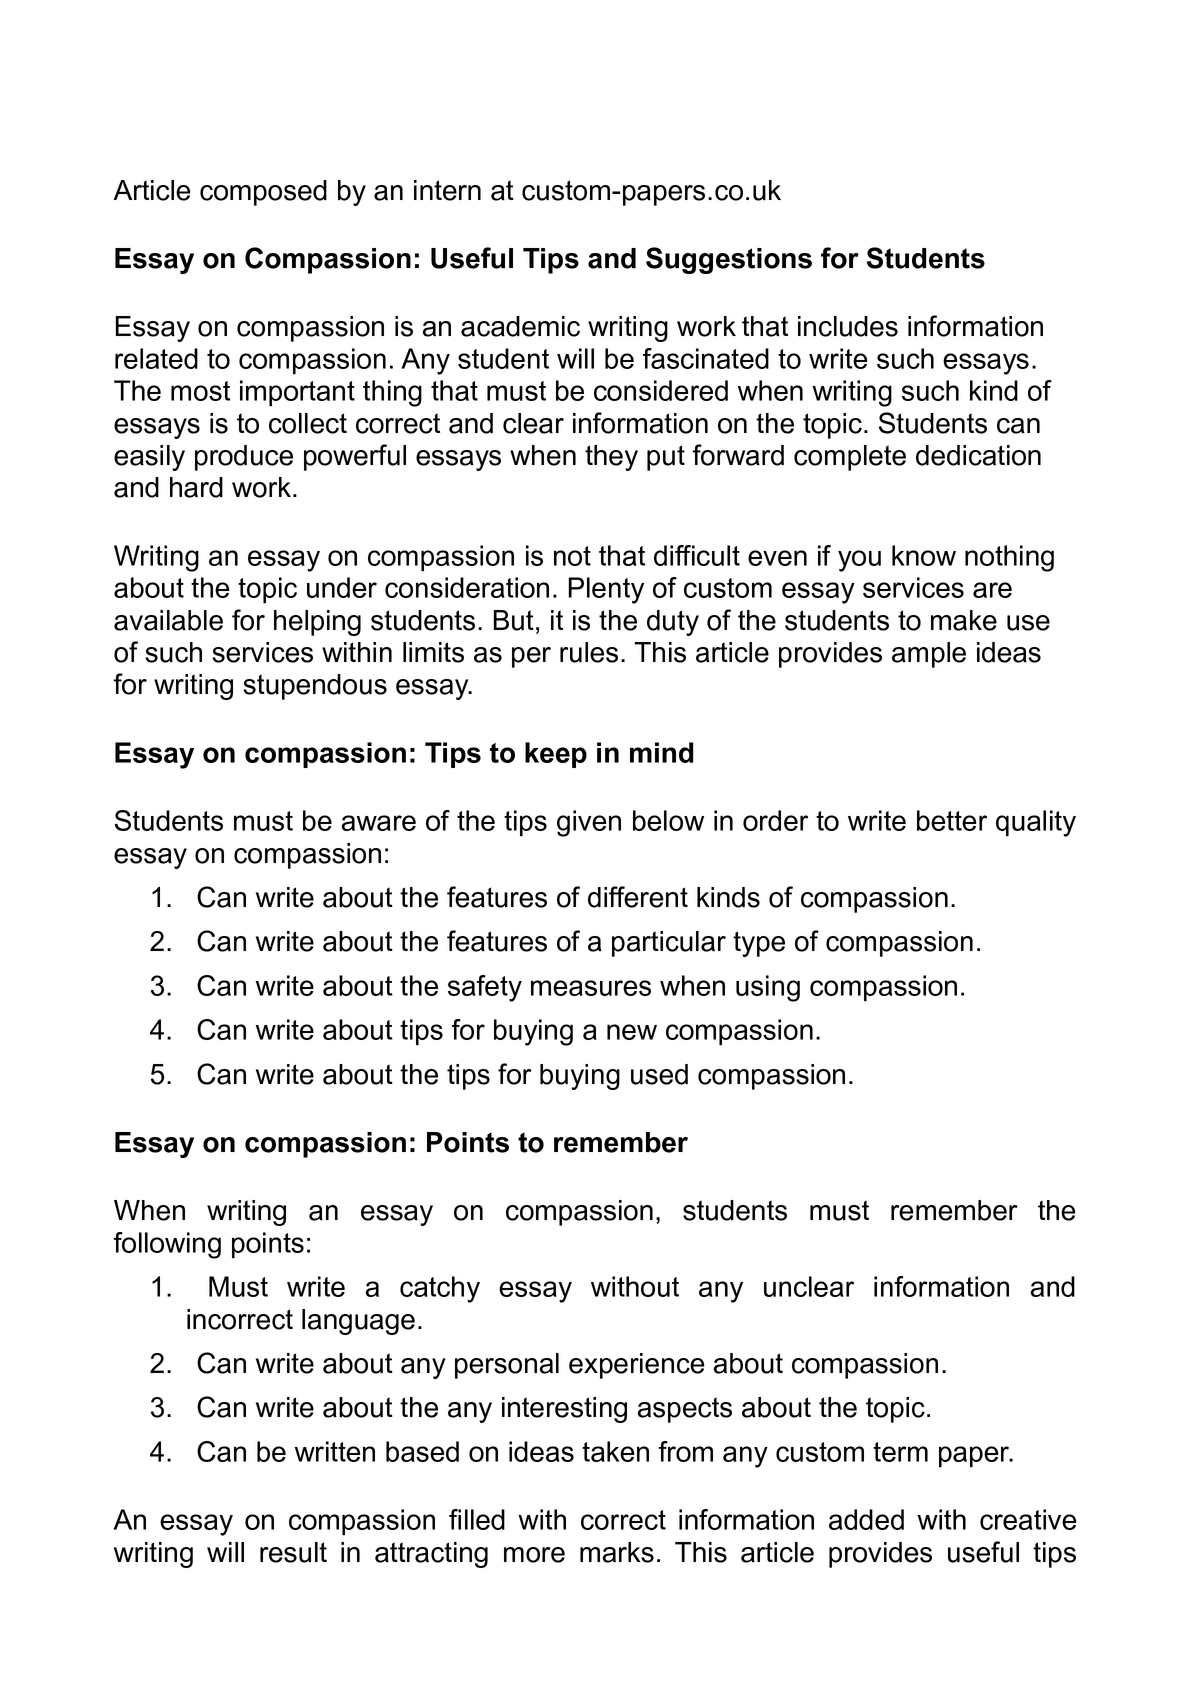 Empathy and Compassion Essay